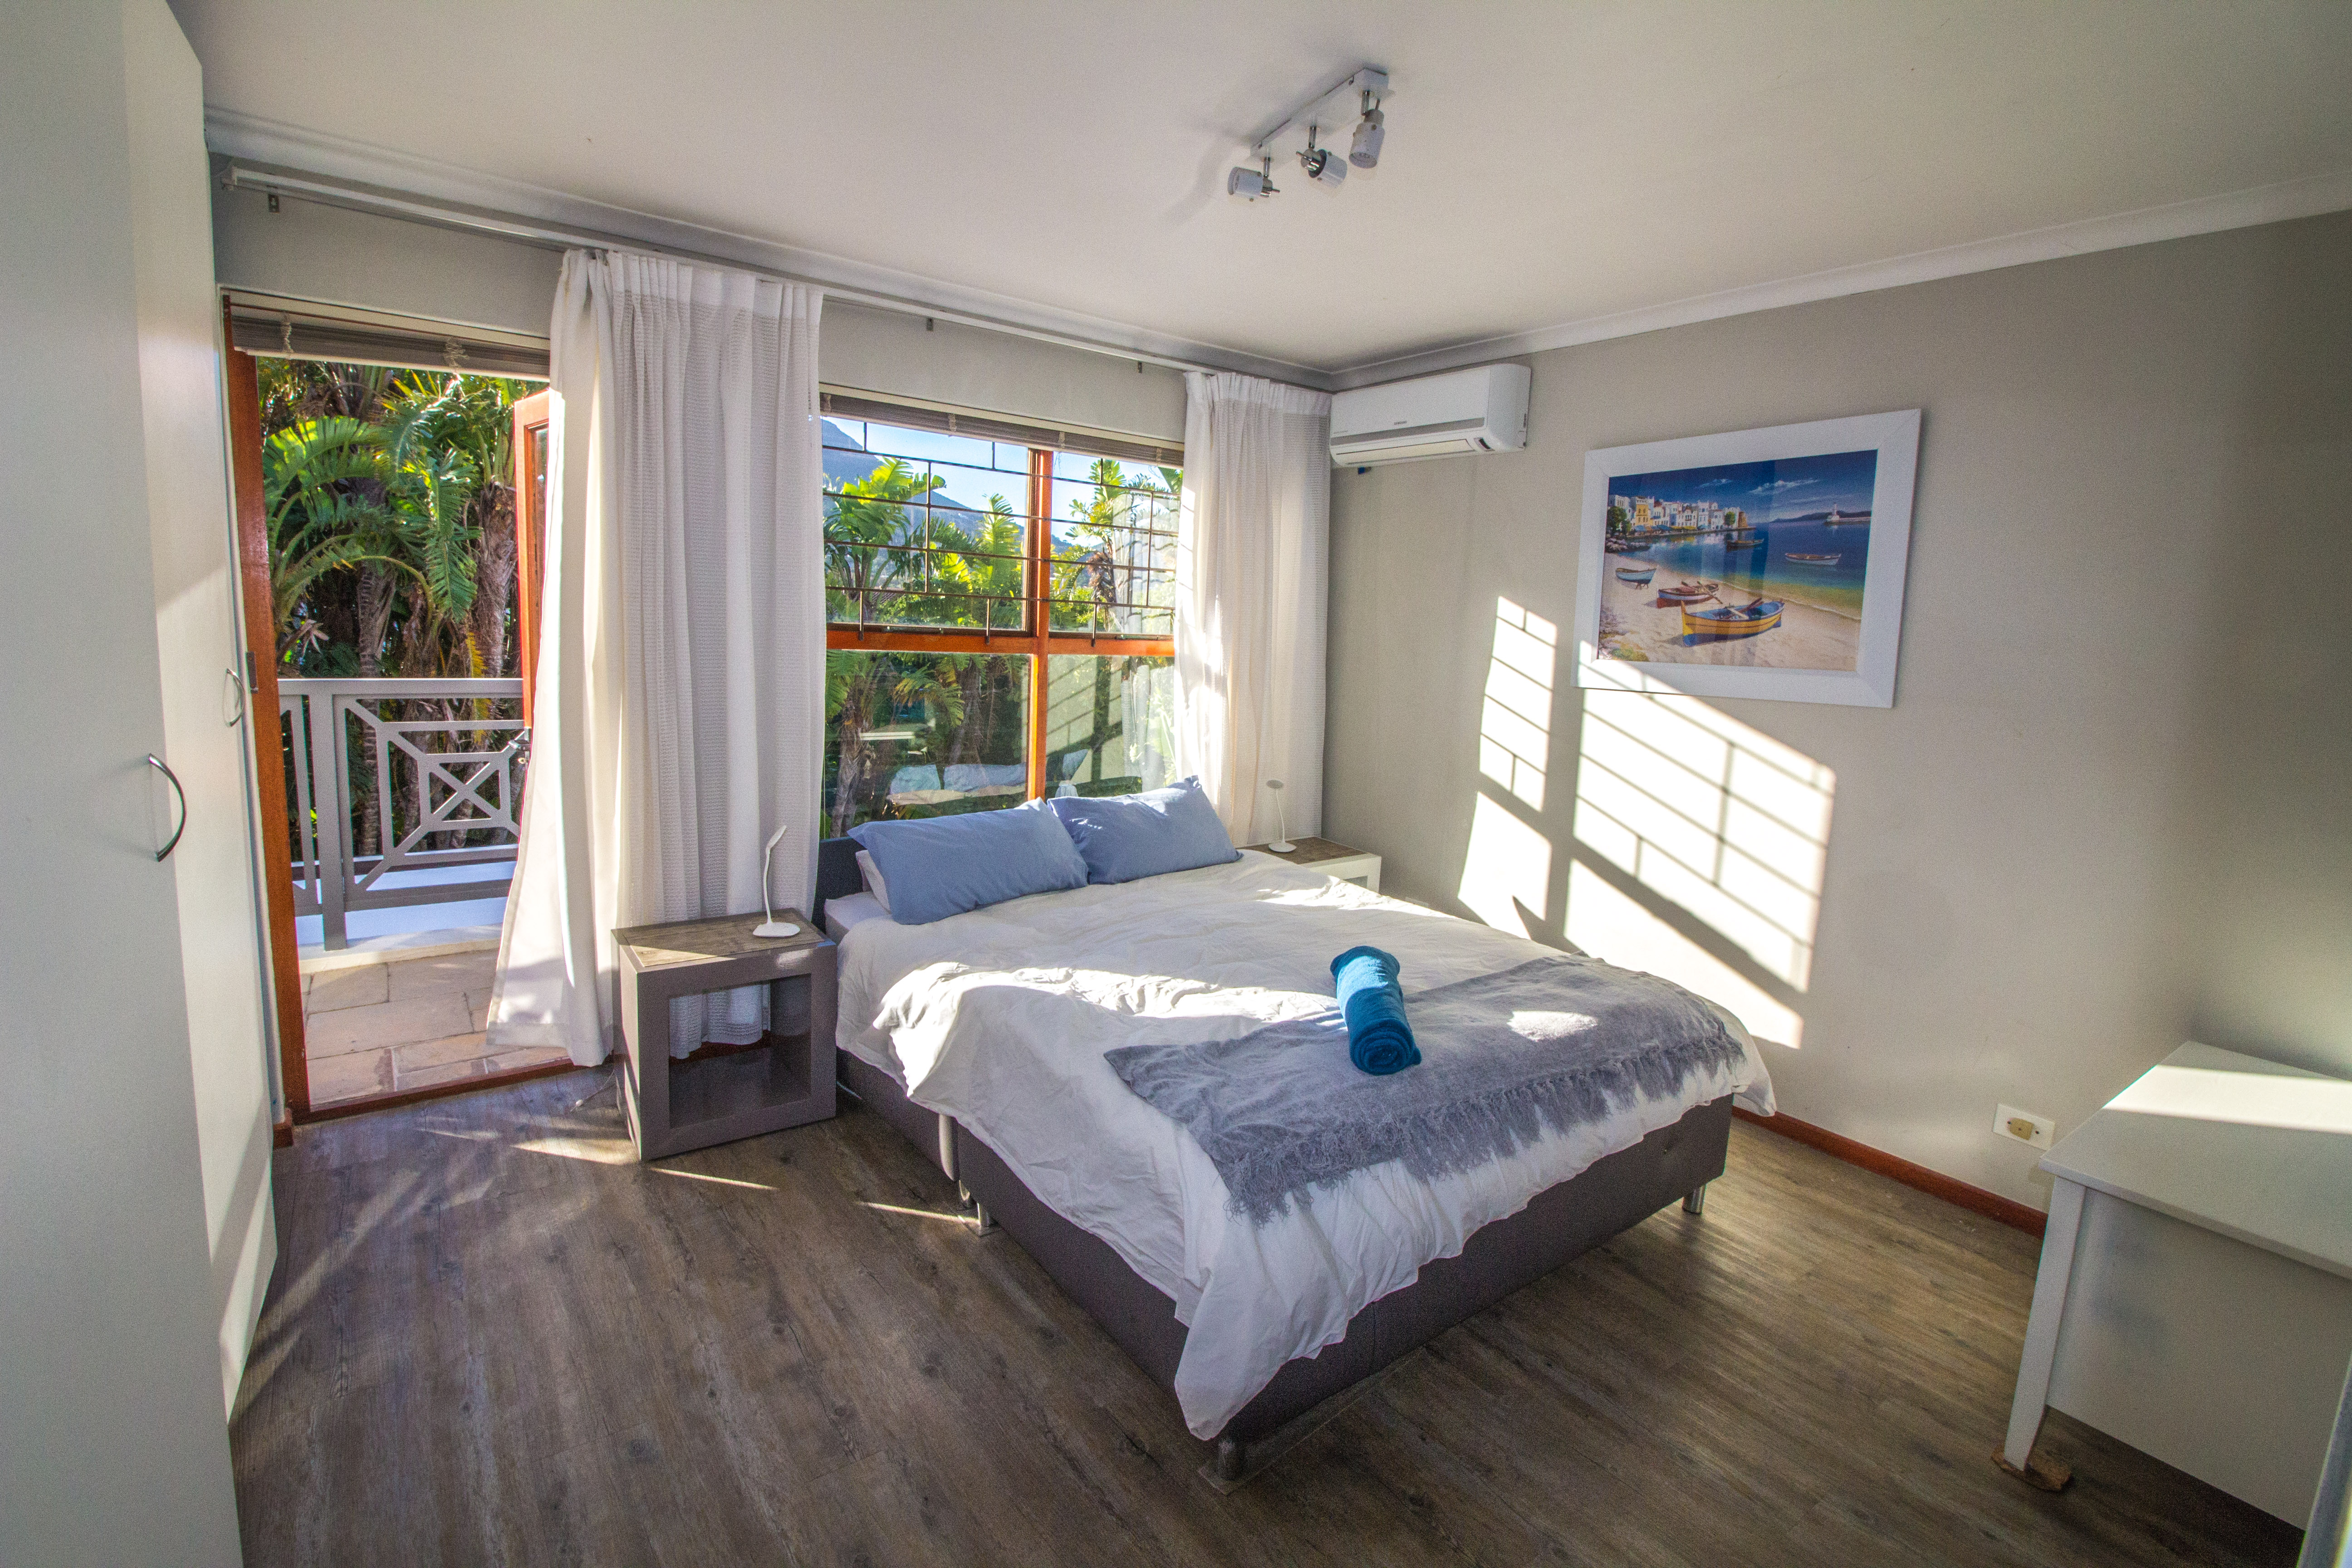 Organised Bedroom Hout Bay Organised Home For The Holidays Sea Glade Hout Bay R4